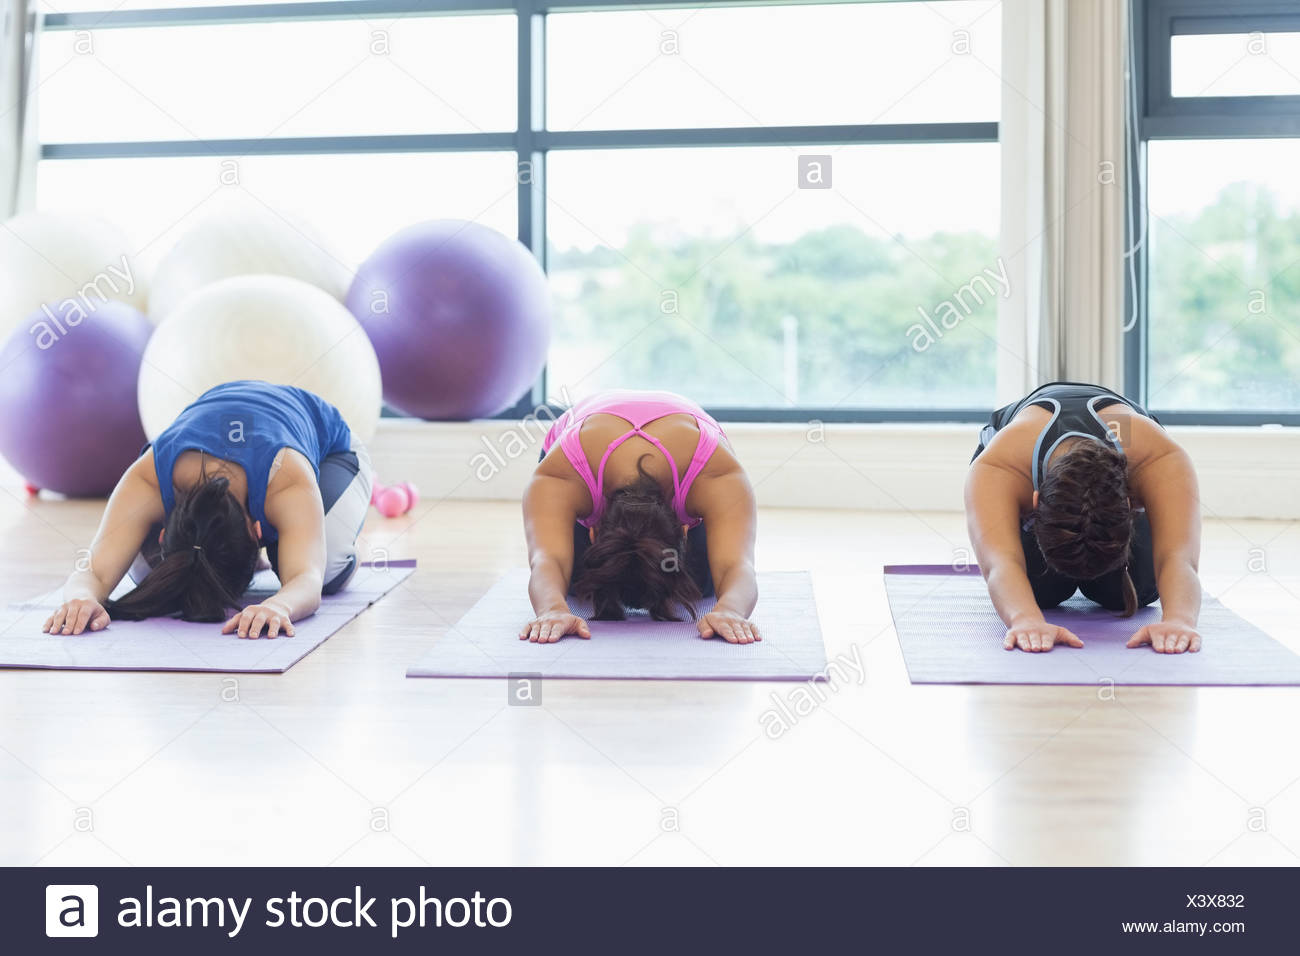 Fit women bending over on exercise mats in fitness studio - Stock Image